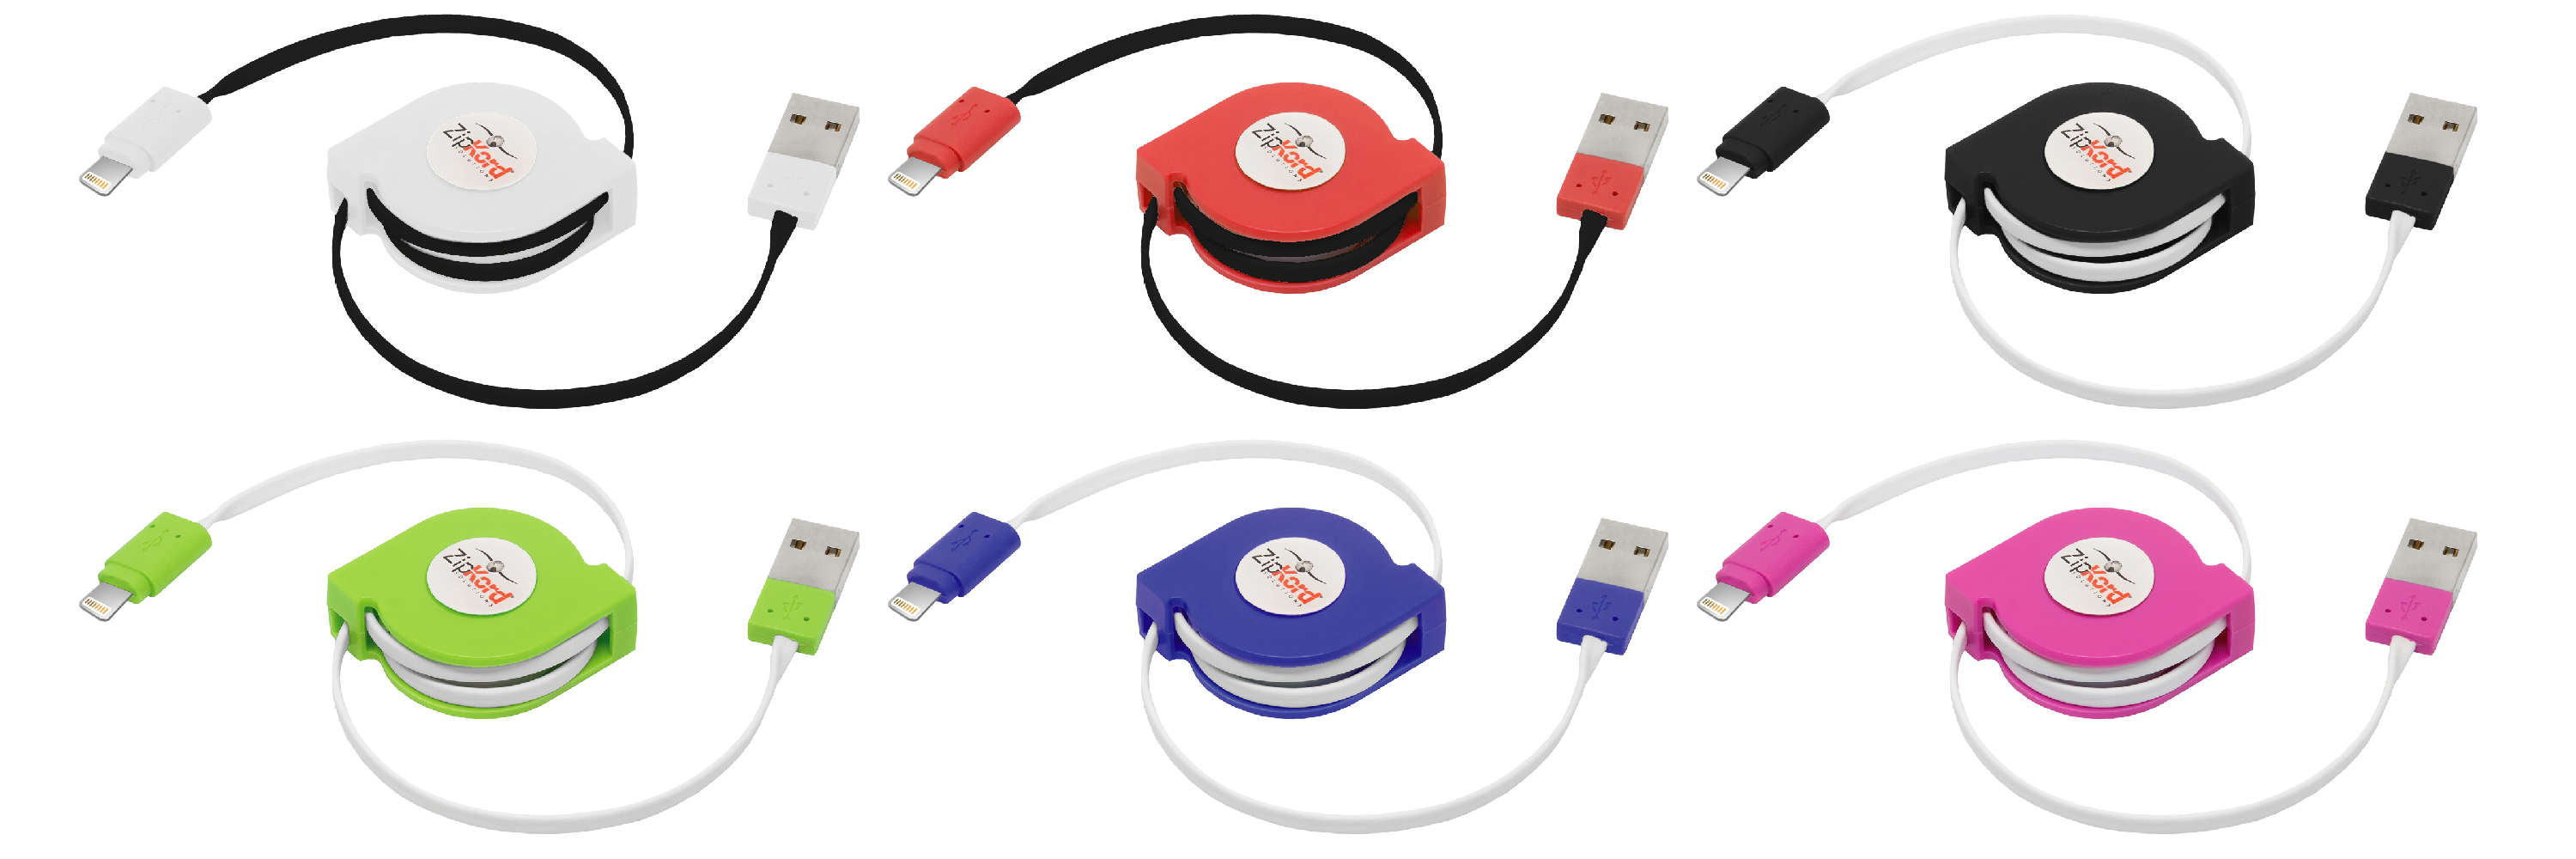 retractable lightning for apple cable zipkord